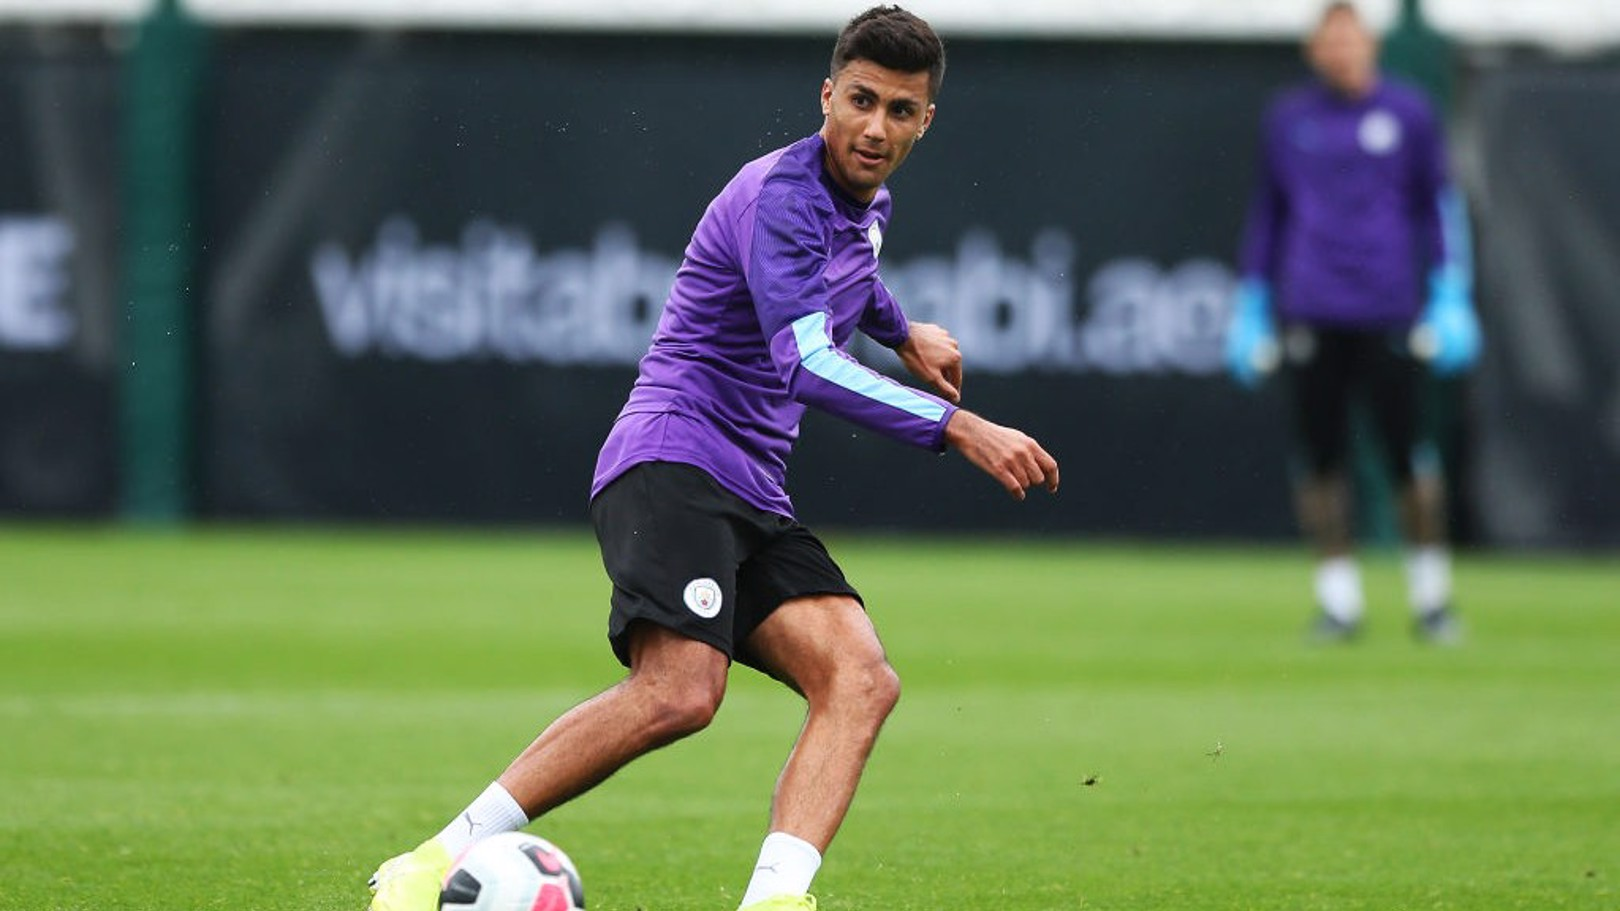 ON THE MOVE: Rodri takes the ball in training.